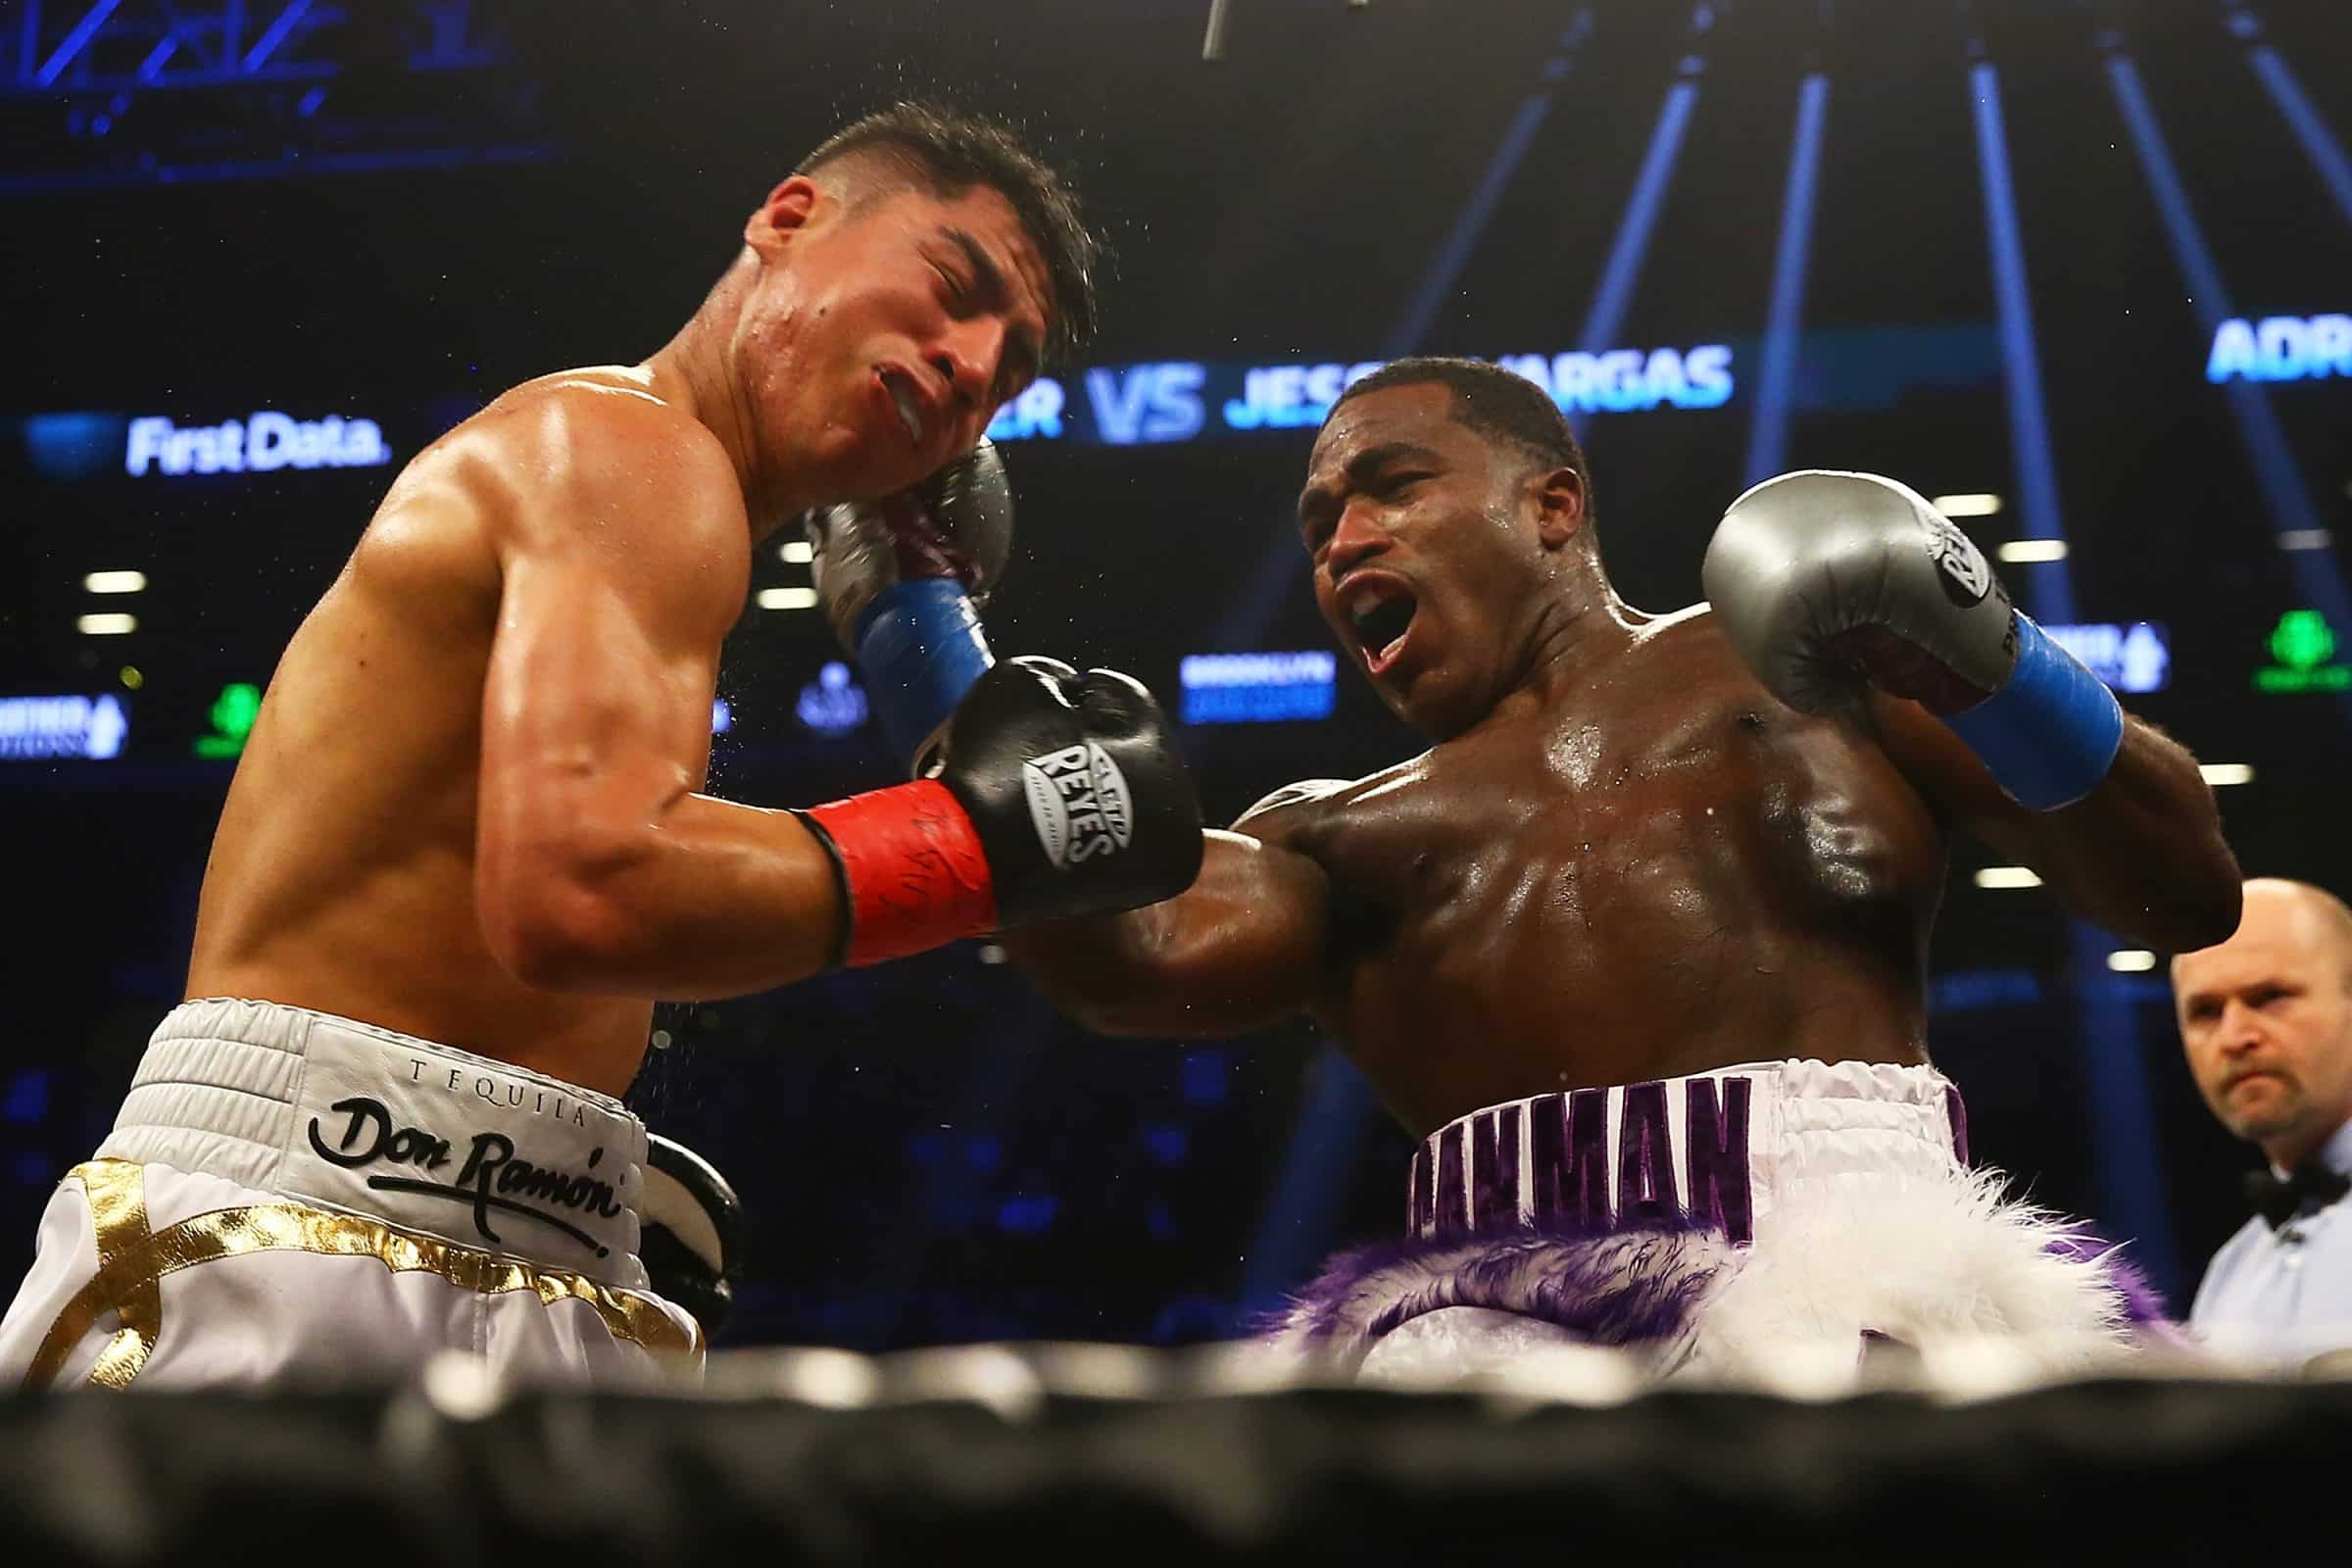 Adrien Broner Battles Jessie Vargas To a Draw, Broner Disrespectful After Fight